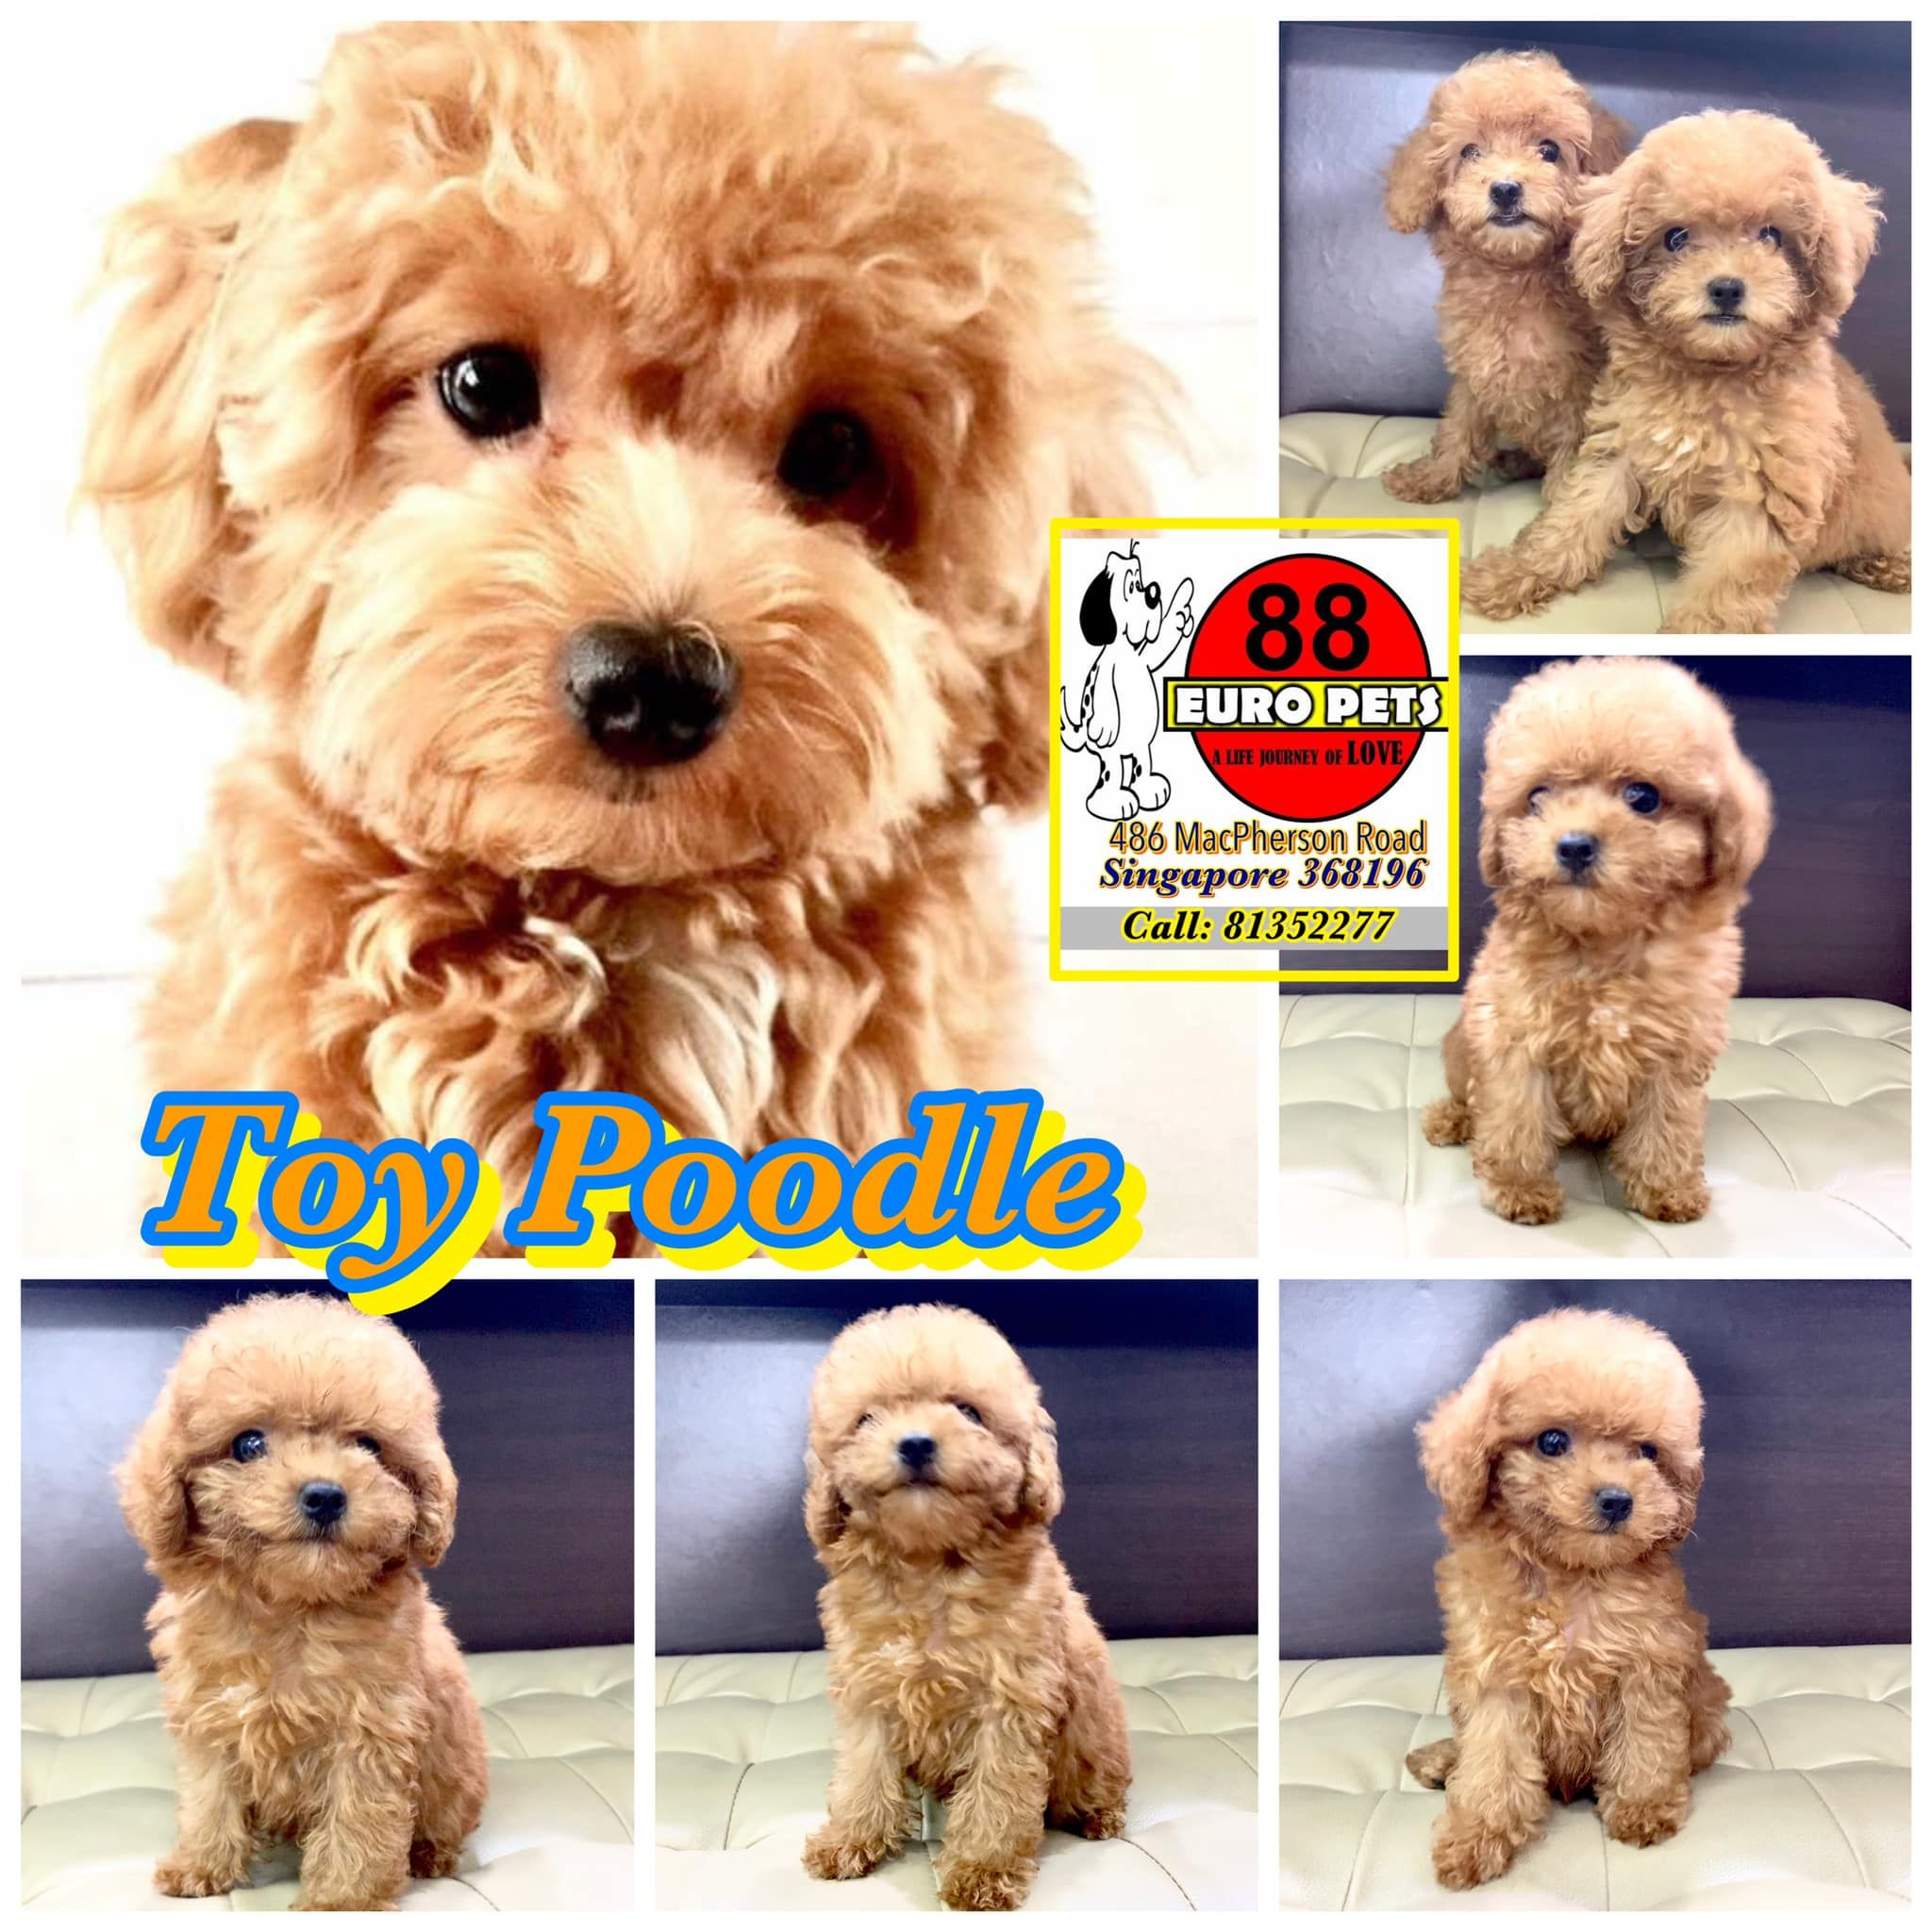 Toy Poodle Puppies For Sale Poodle Puppies For Sale Toy Poodle Puppies Puppies For Sale